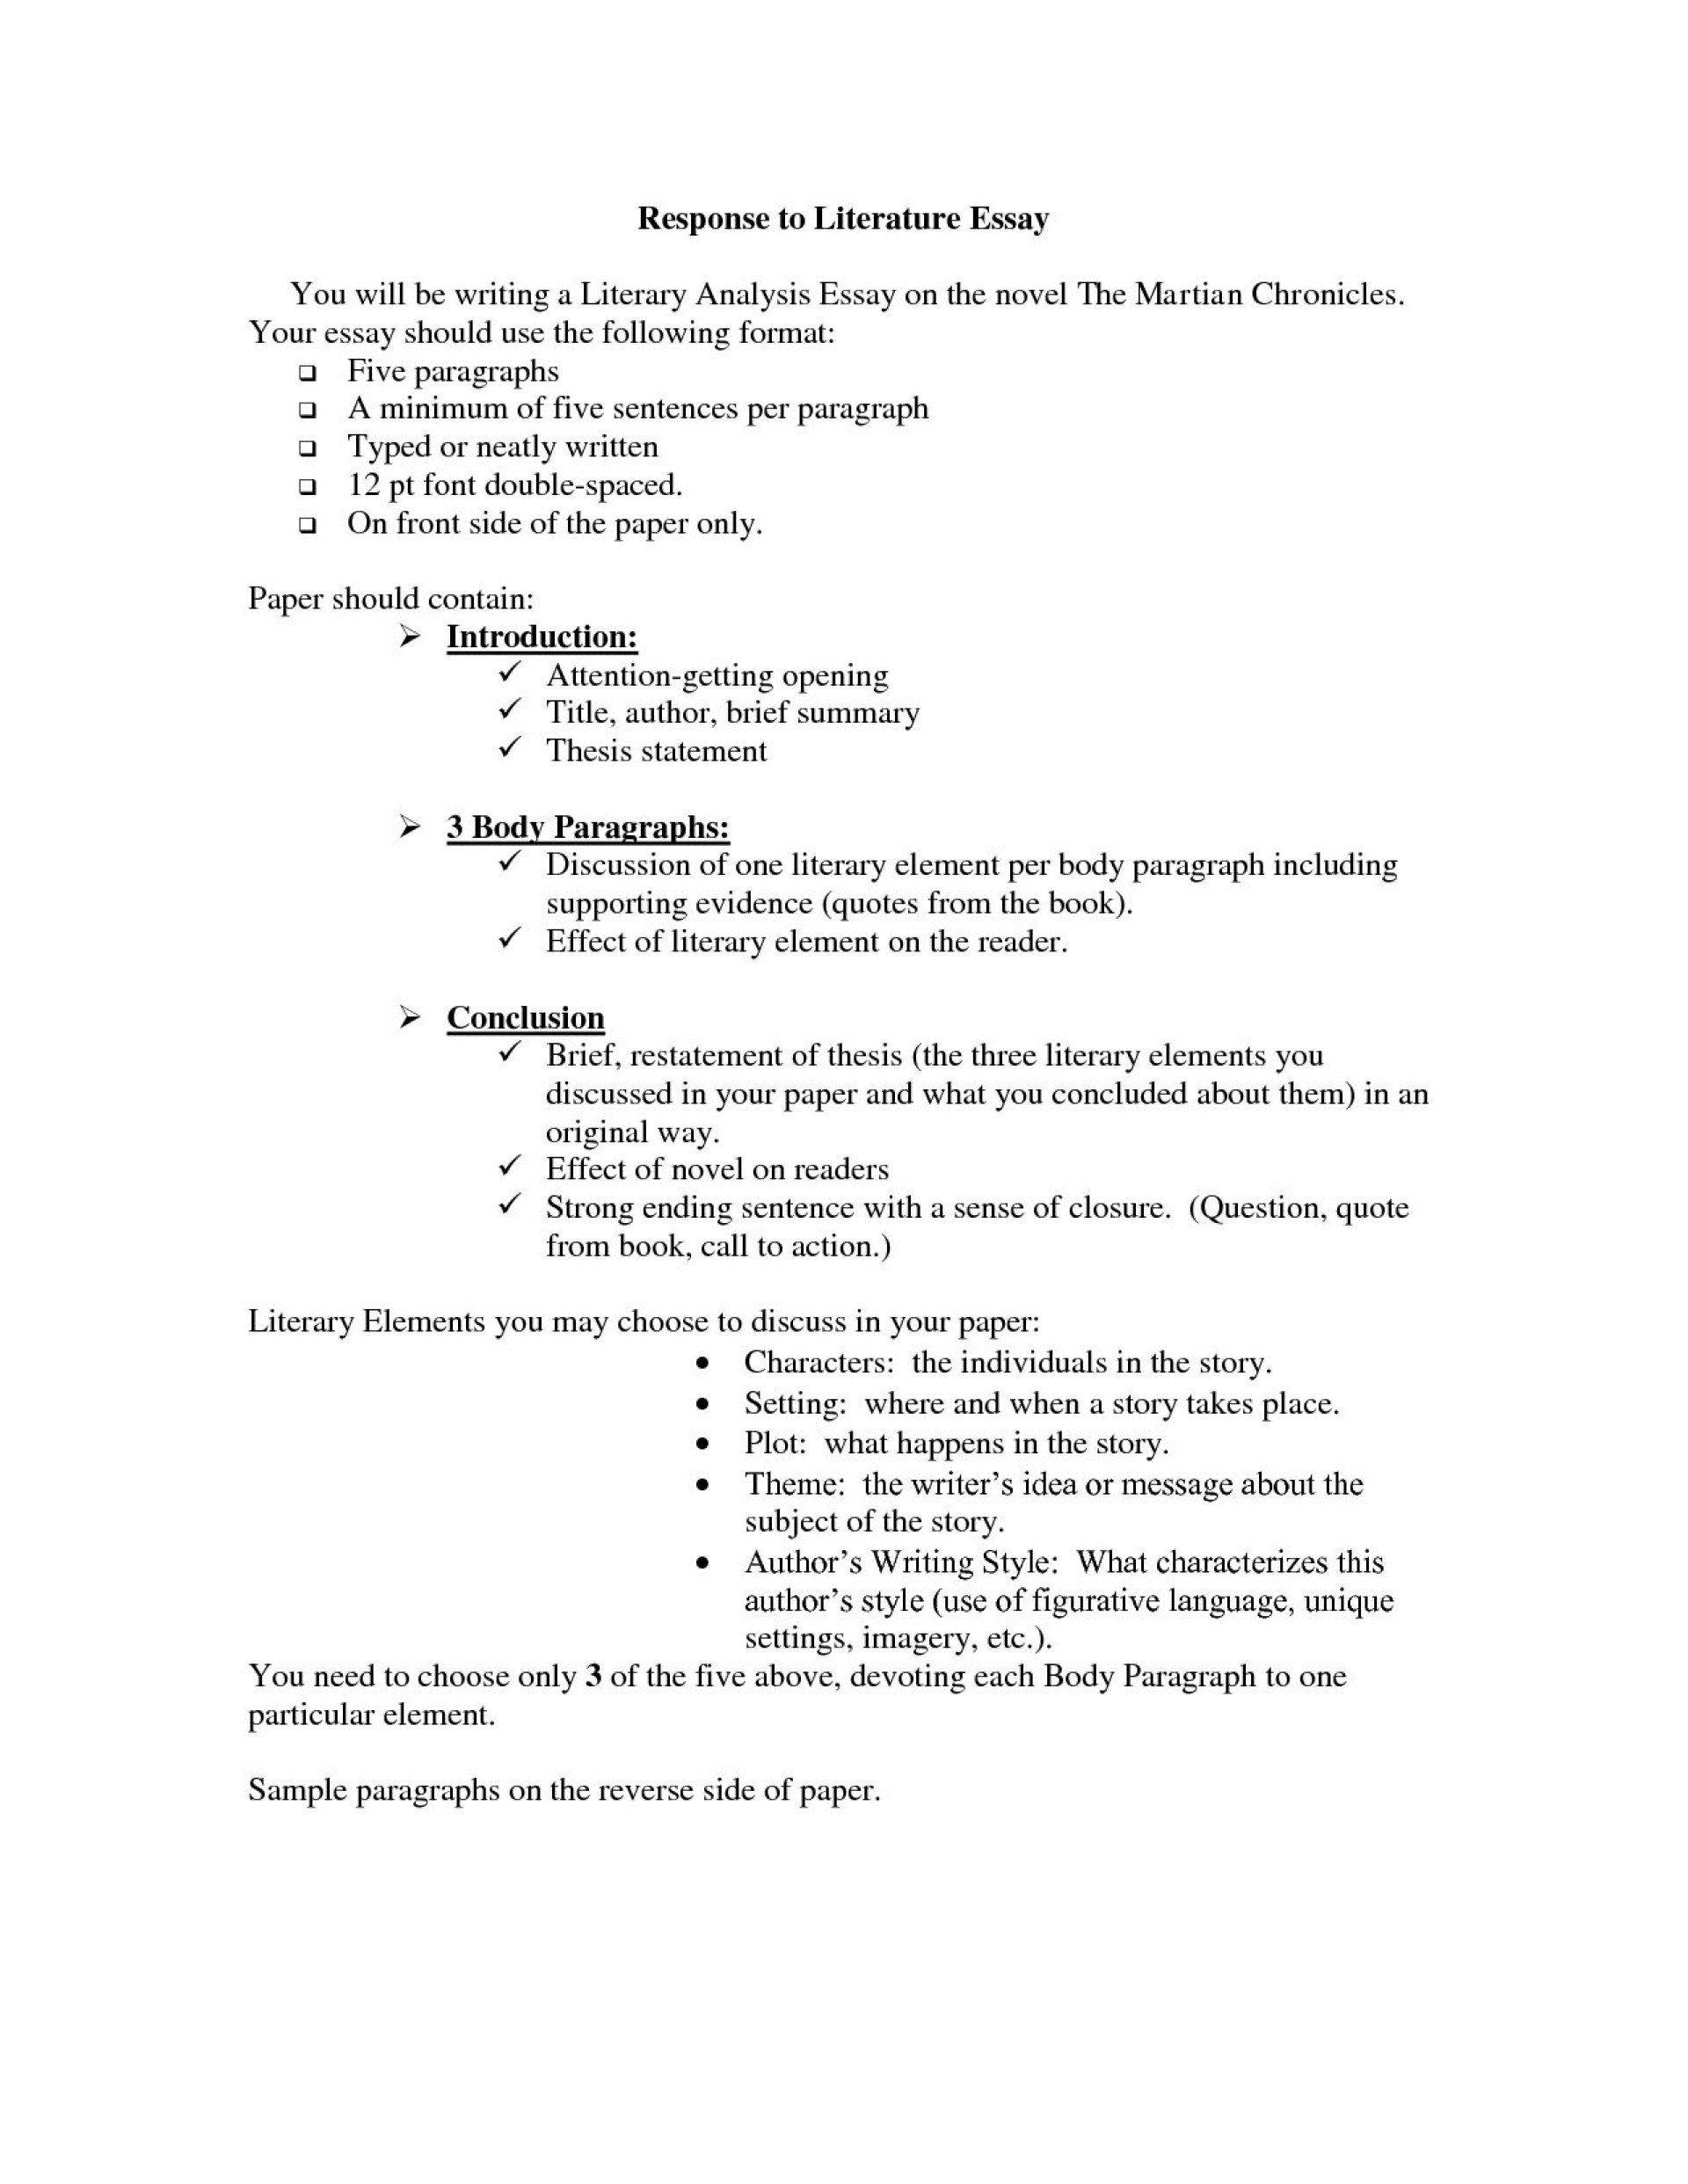 006 Essay Example Brilliant Ideas Of Resume Cv Cover Letter Poetry Reflection Paper Poem Parison Creative Explication Formidable Trifles Questions Feminism Topics 1920